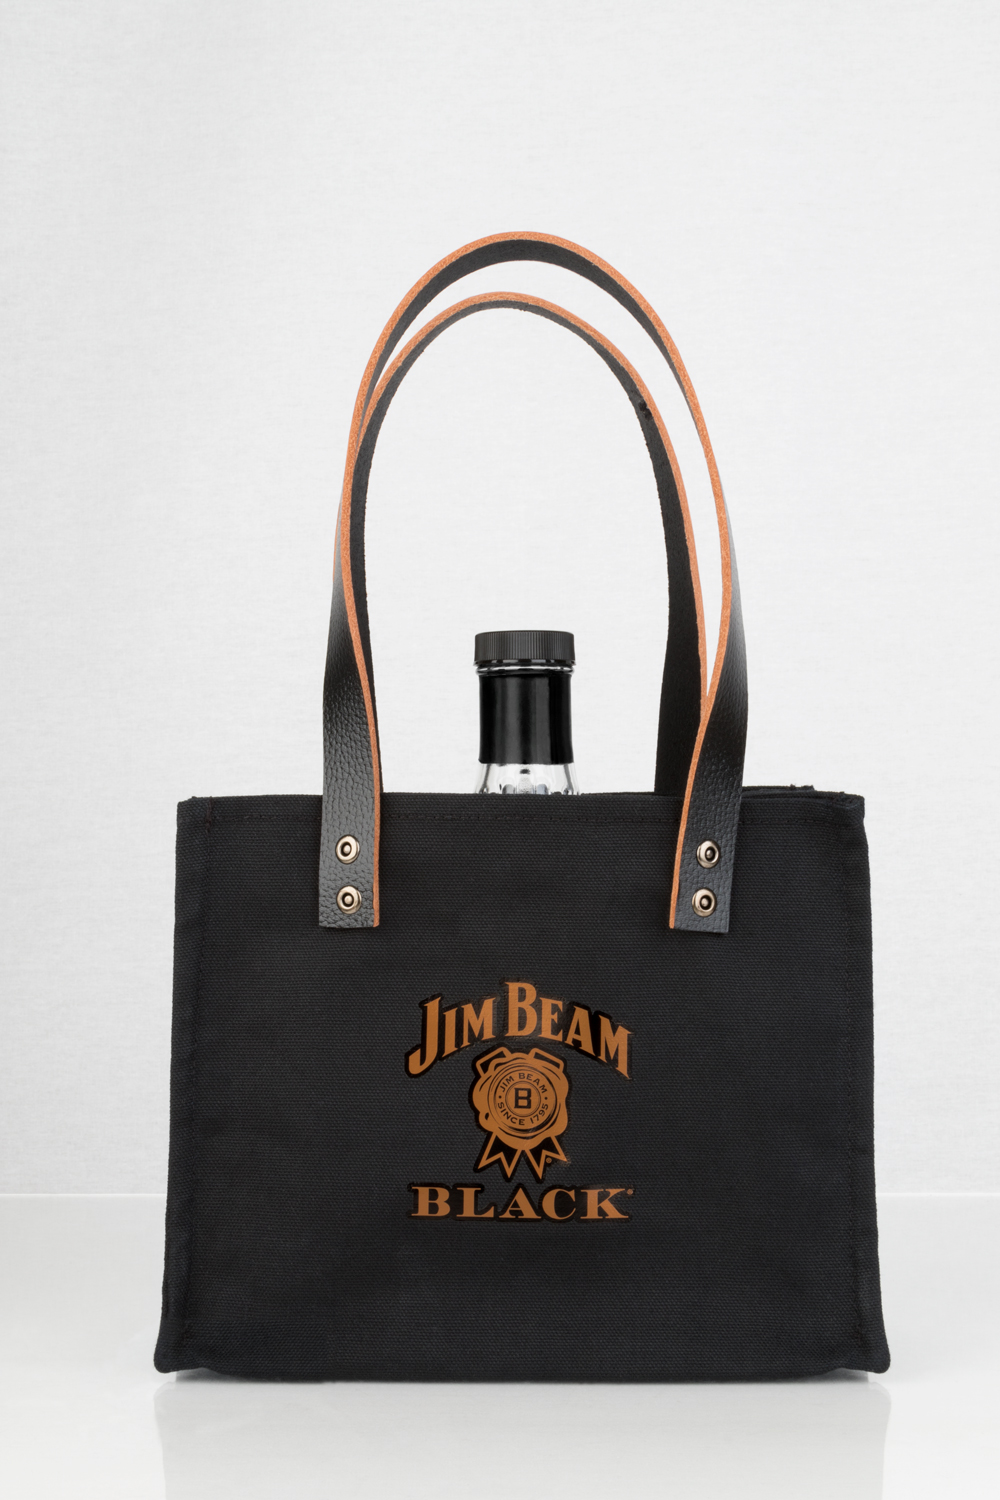 ZH_BrandBag_JimBeam_Black_custombag.jpg